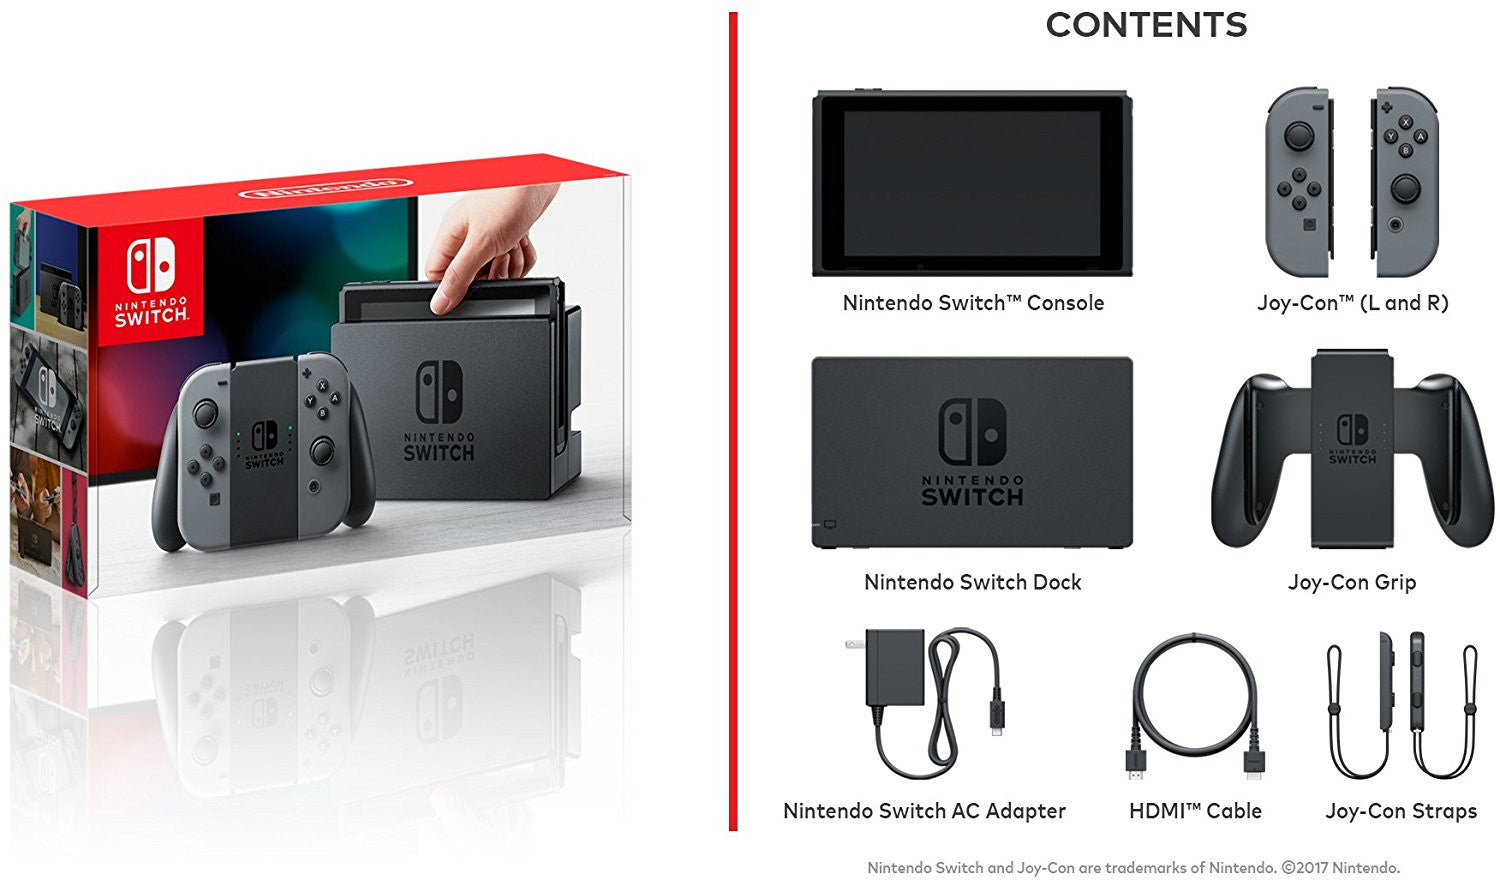 Nintendo Switch Console Contents